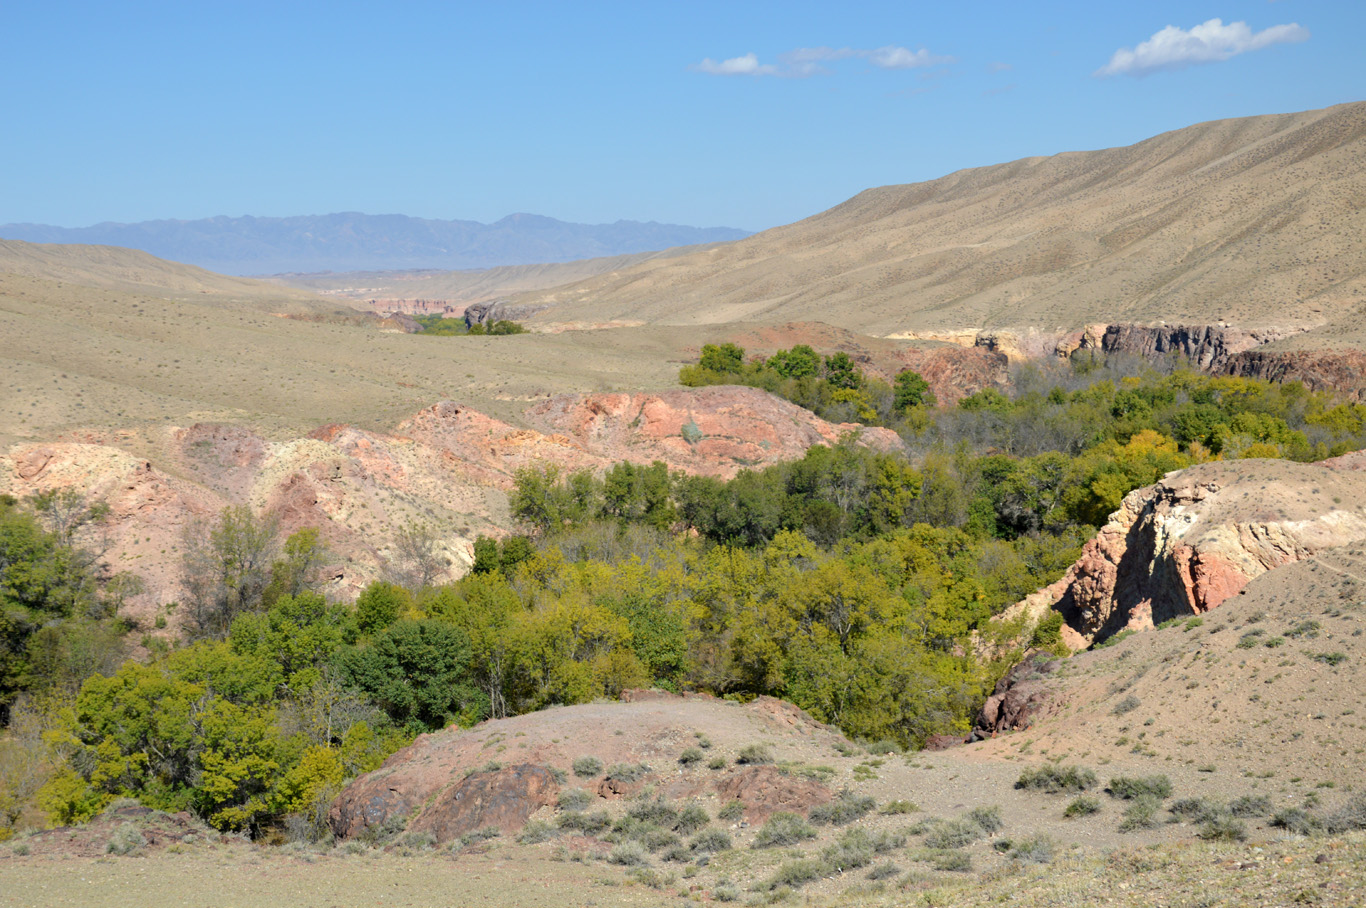 The unimpressive beginning of the canyon